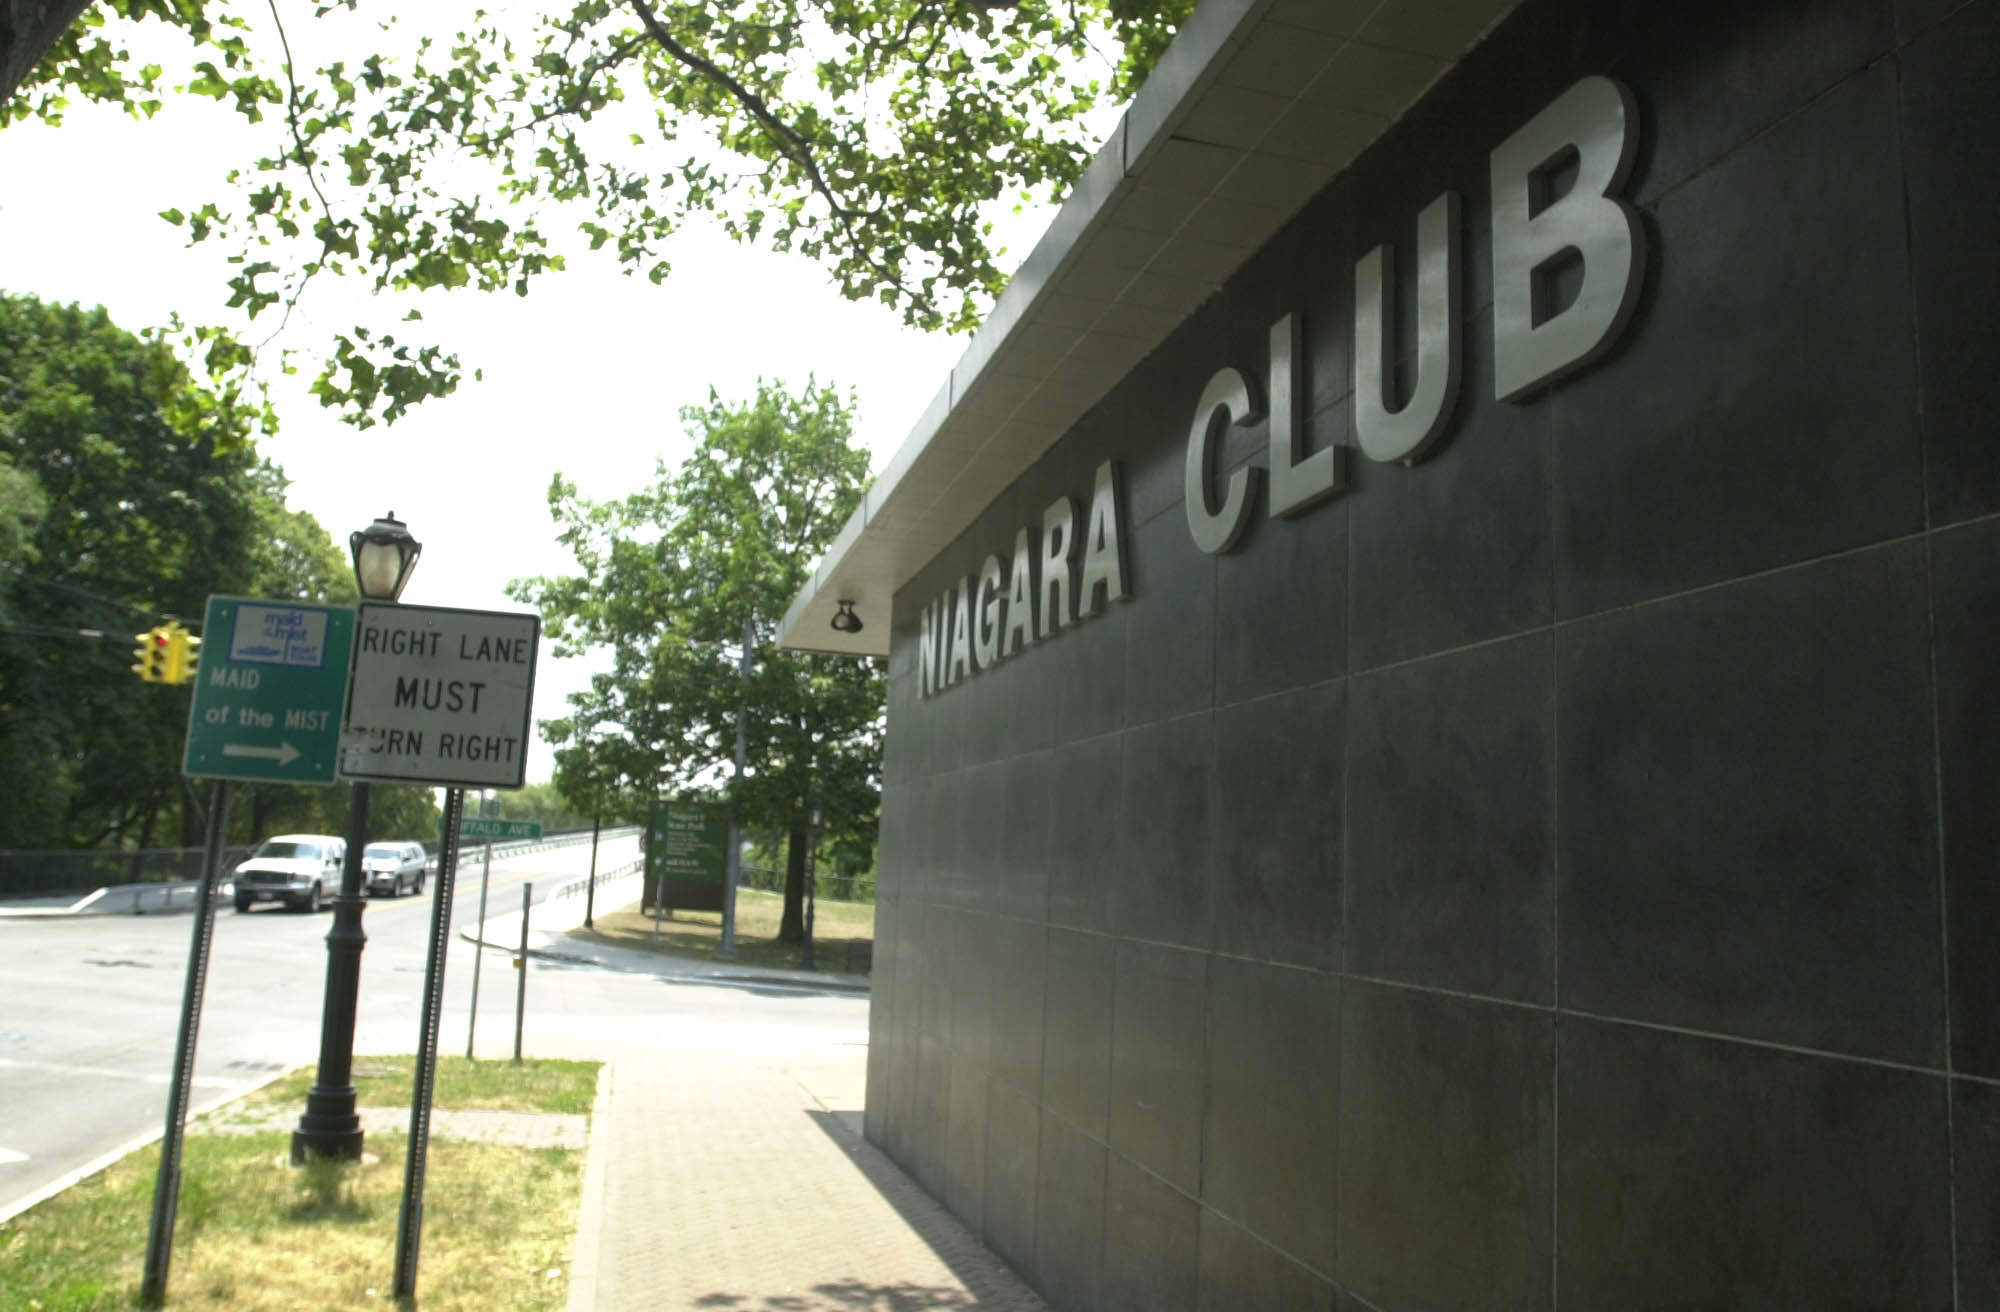 Patel plans to redevelop Niagara Club into new restaurant – The